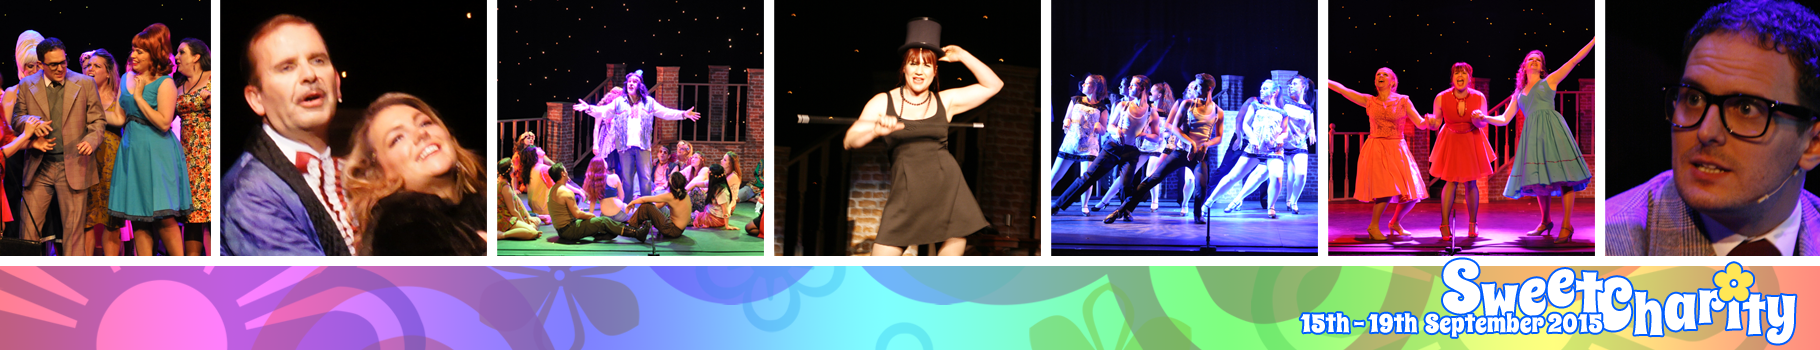 15-09 Sweet Charity LAOS Web PHOTO Banner